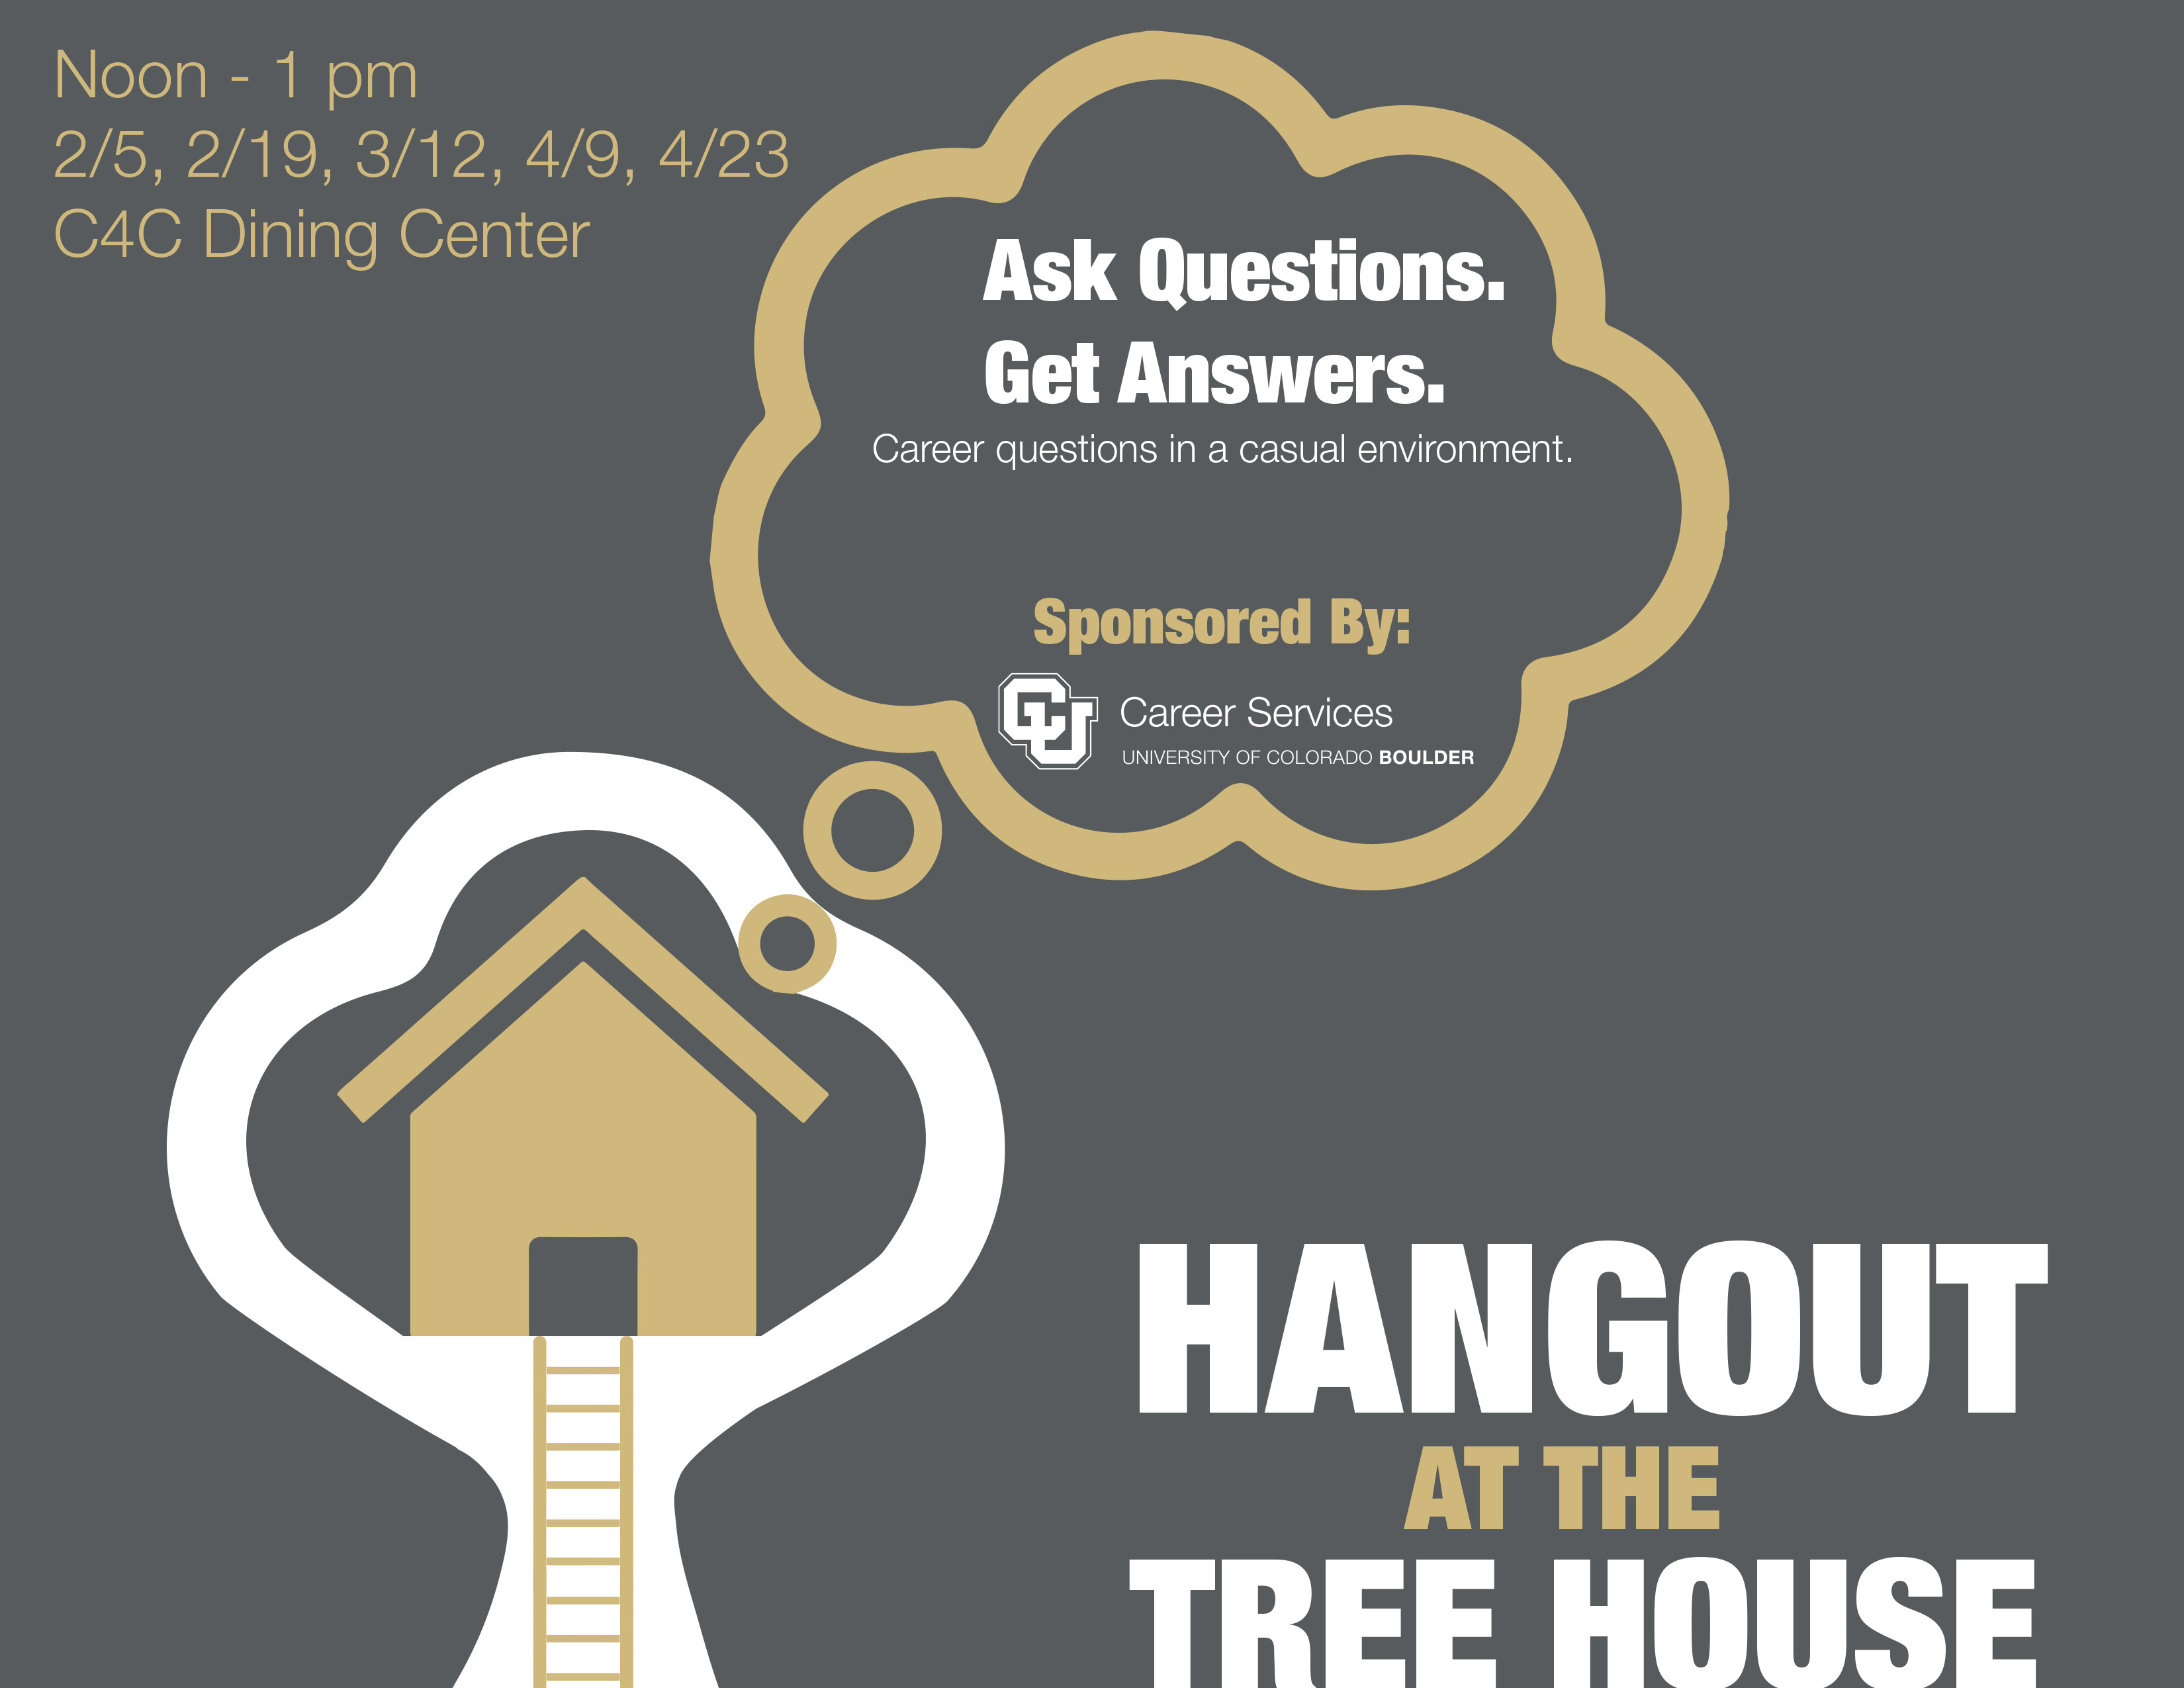 Hangout At The Tree House